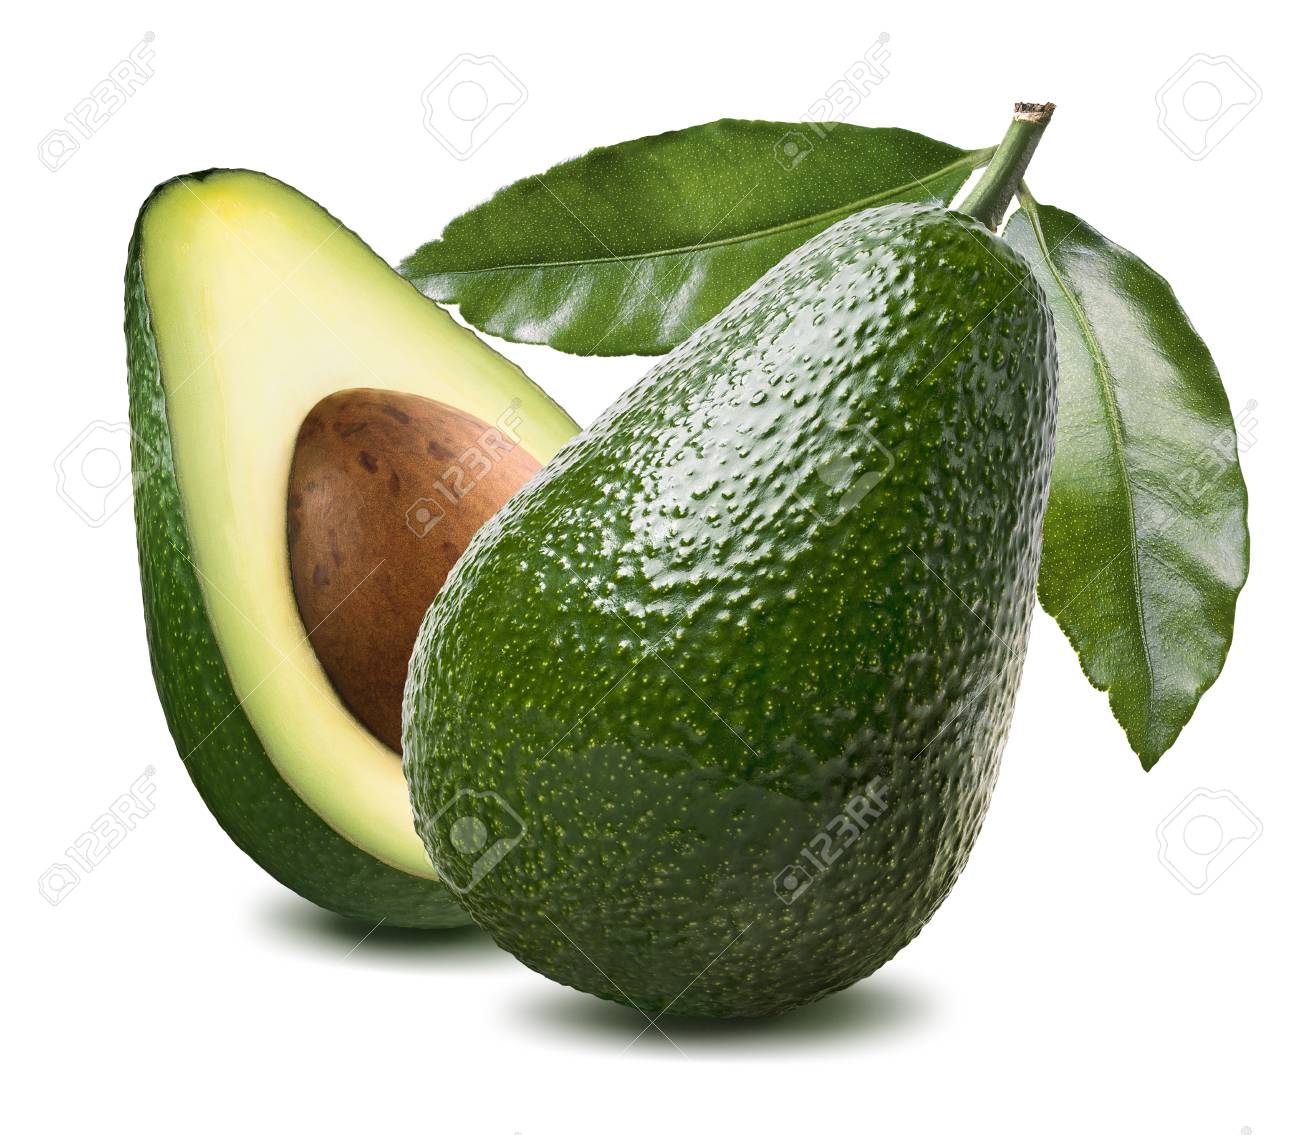 Whole fresh green avocado with leaf and half isolated on white background as package design element - 47397936